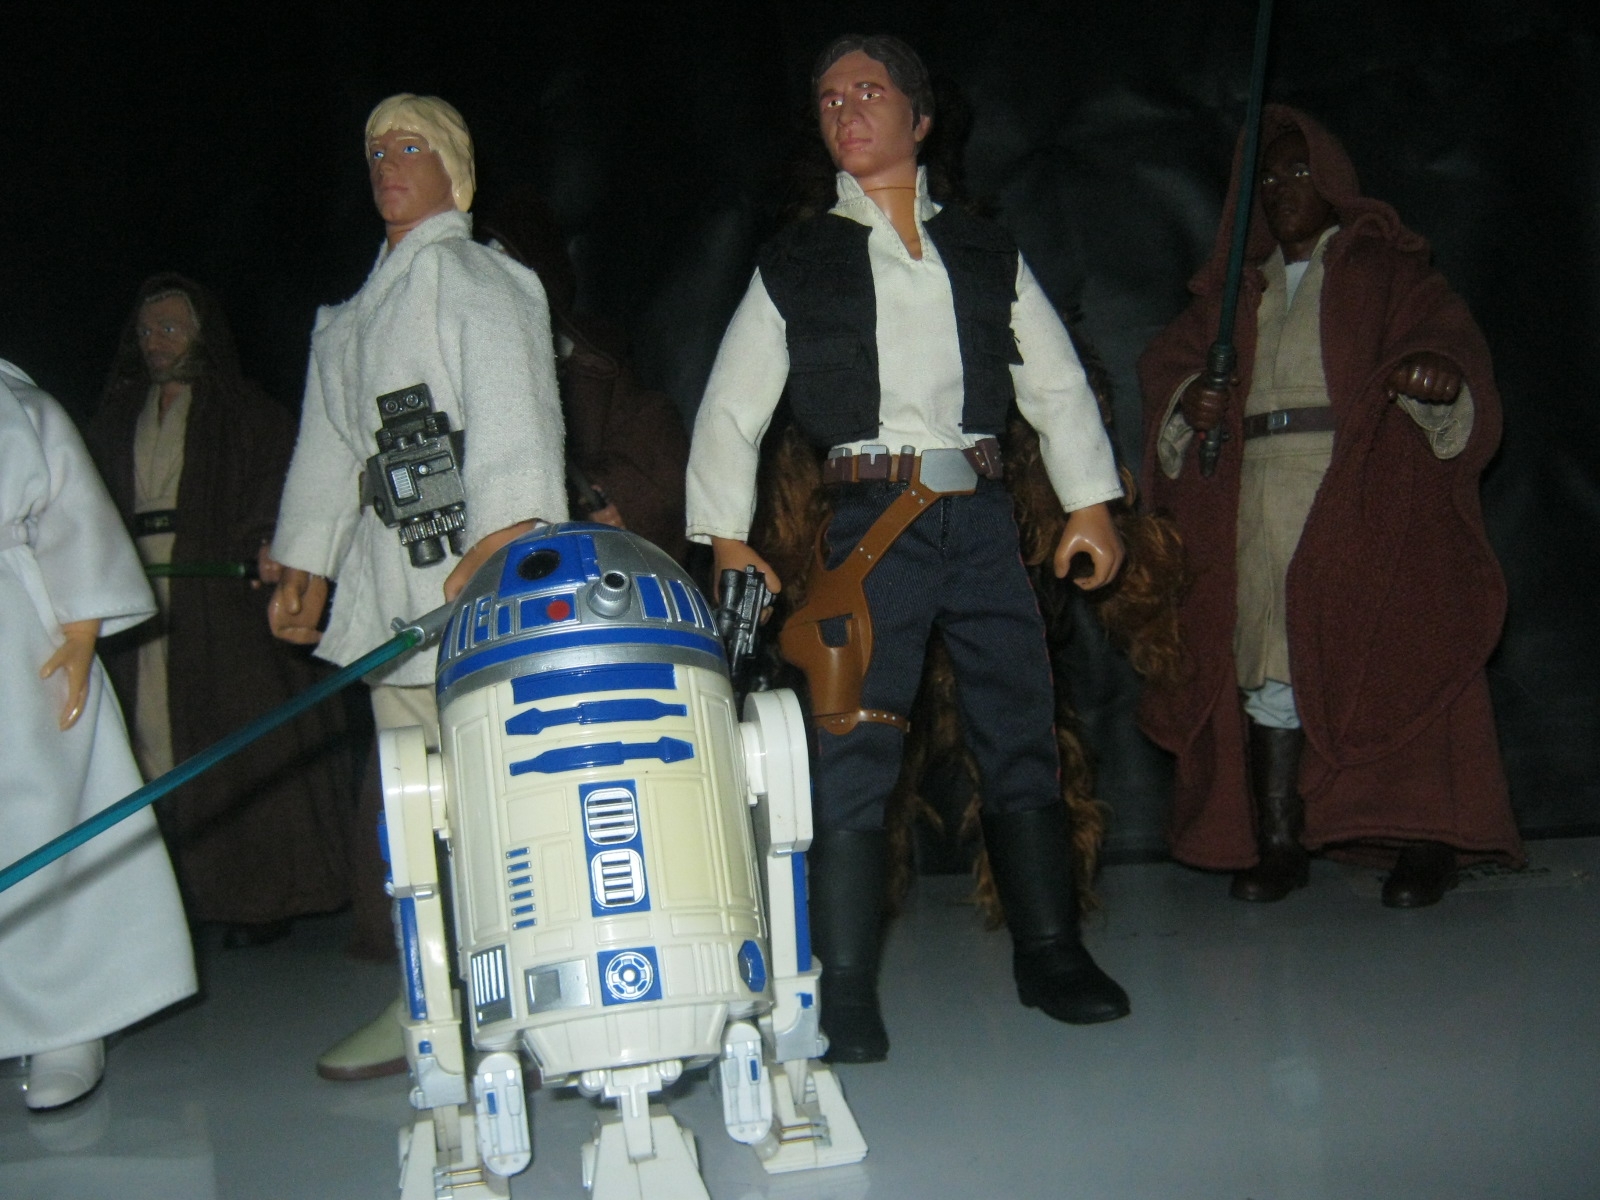 My Star Wars action figure collection